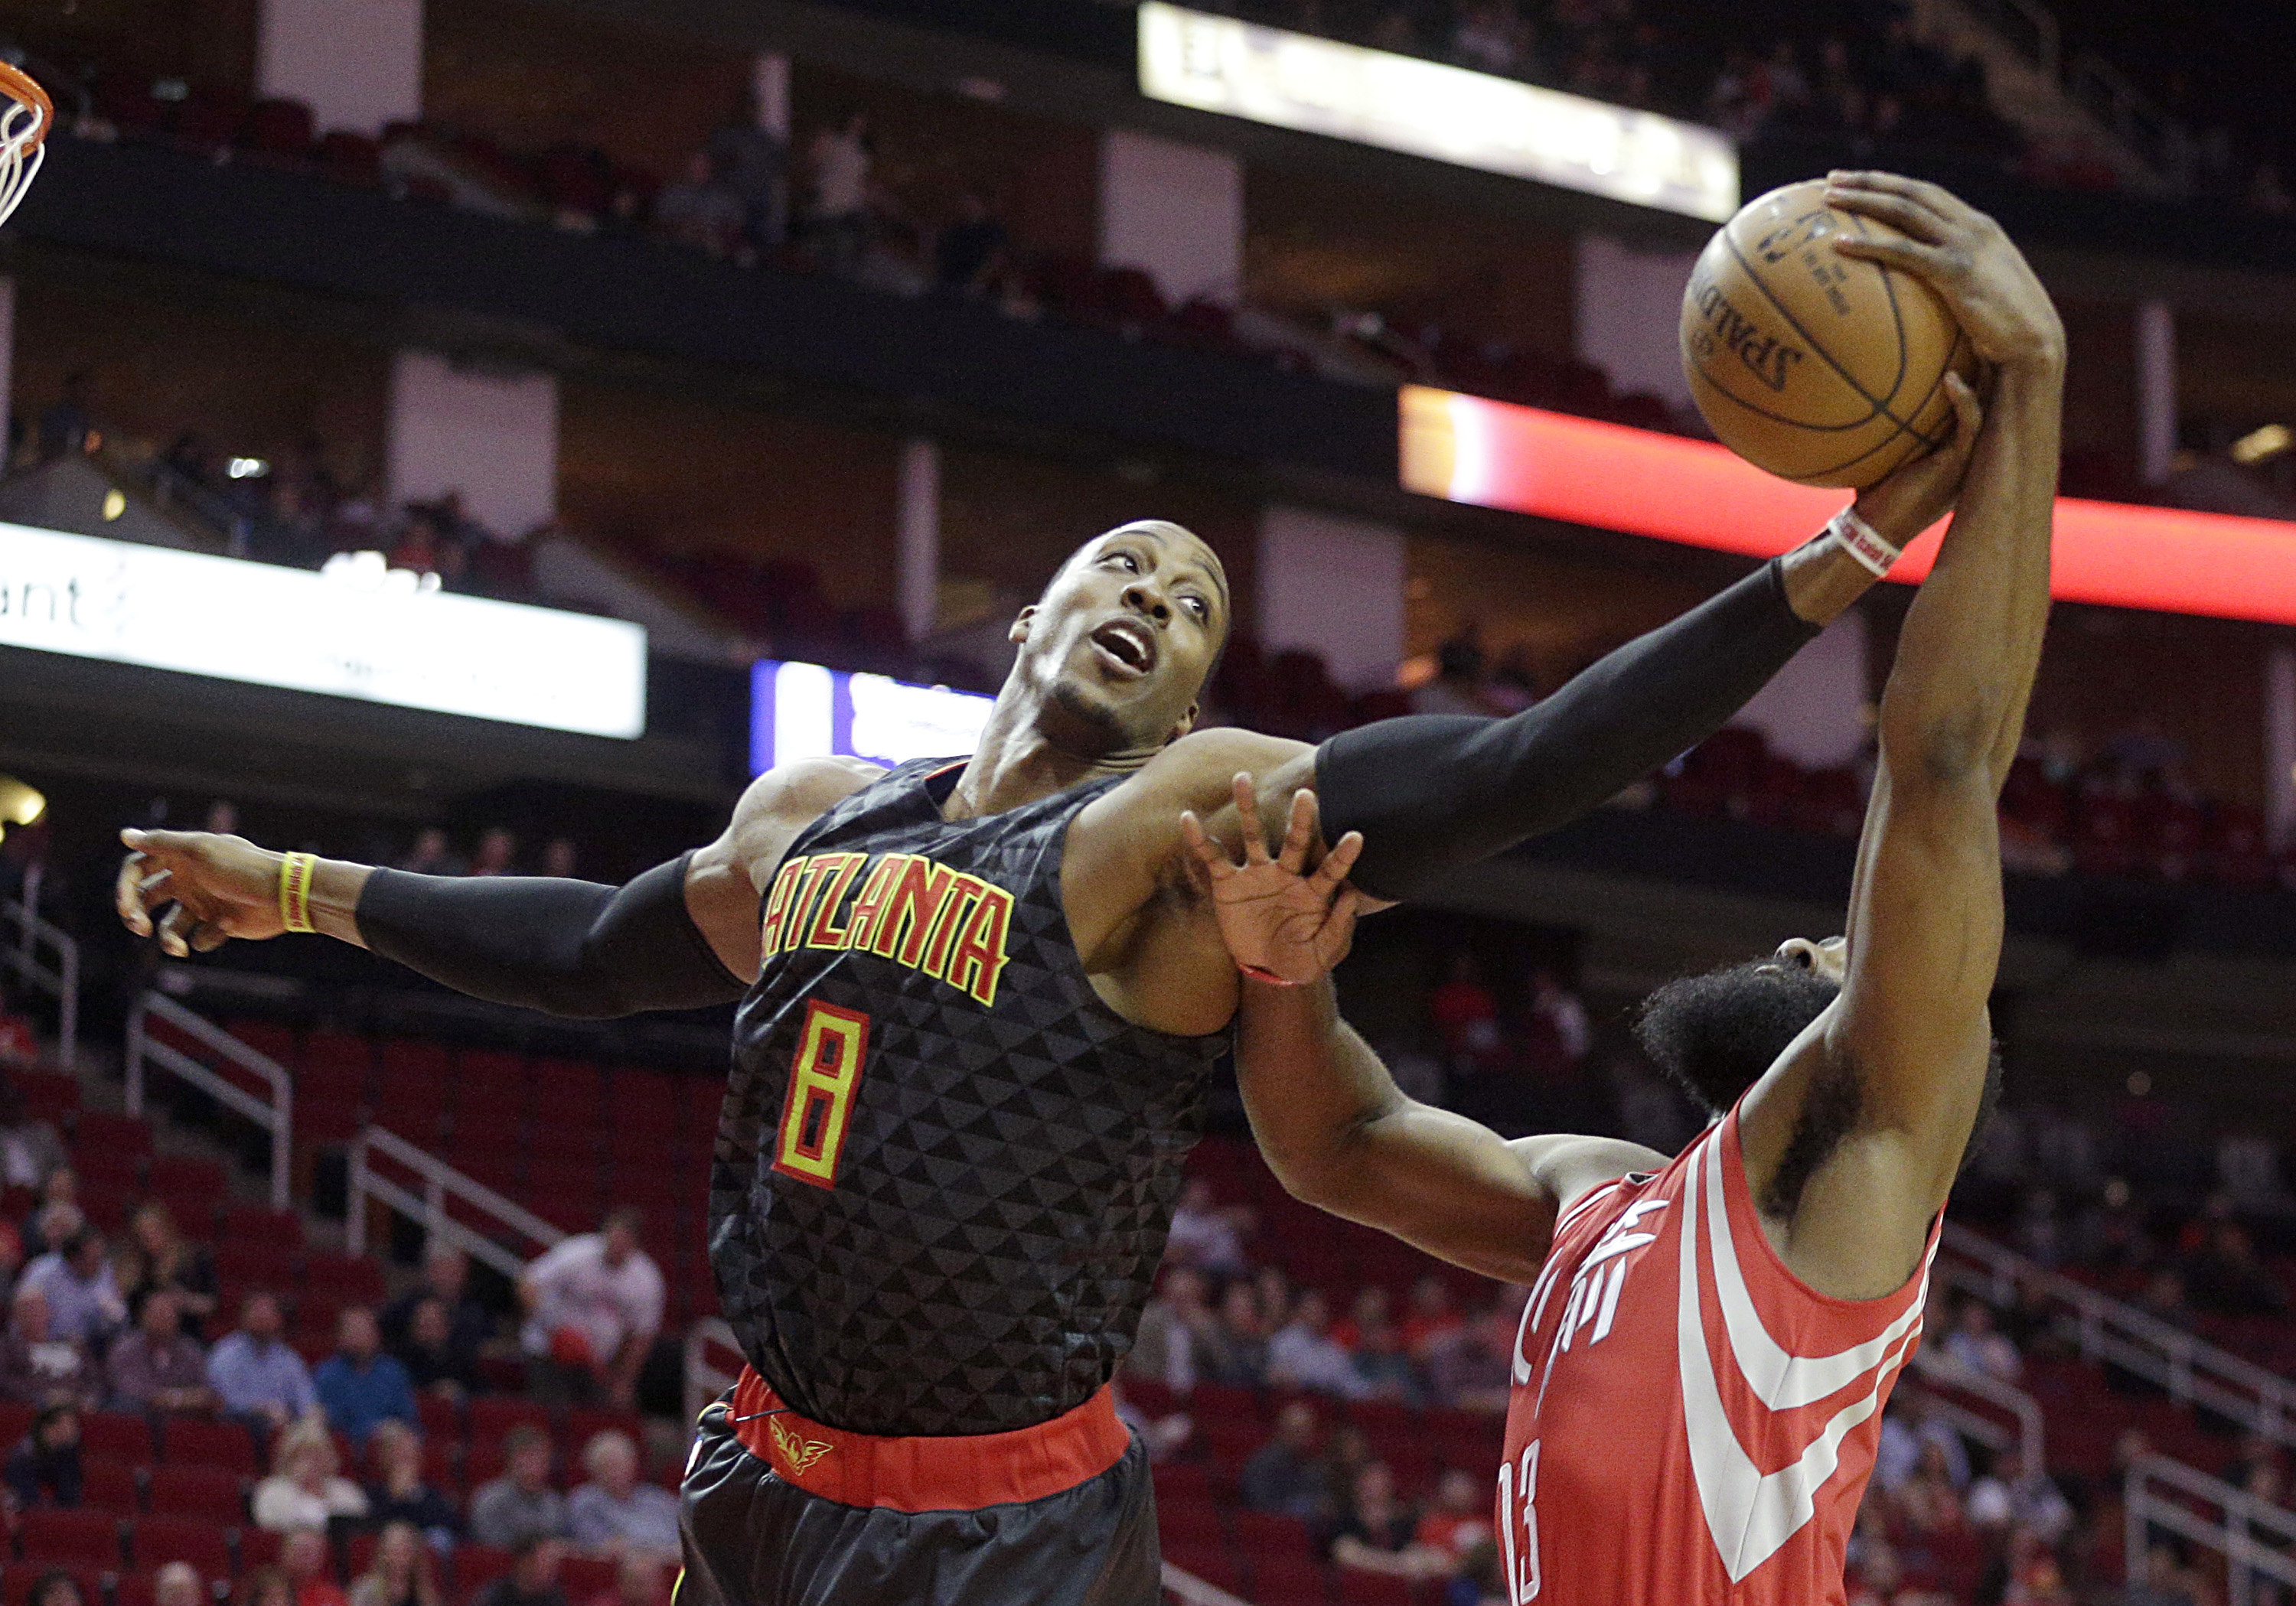 9854136-nba-atlanta-hawks-at-houston-rockets